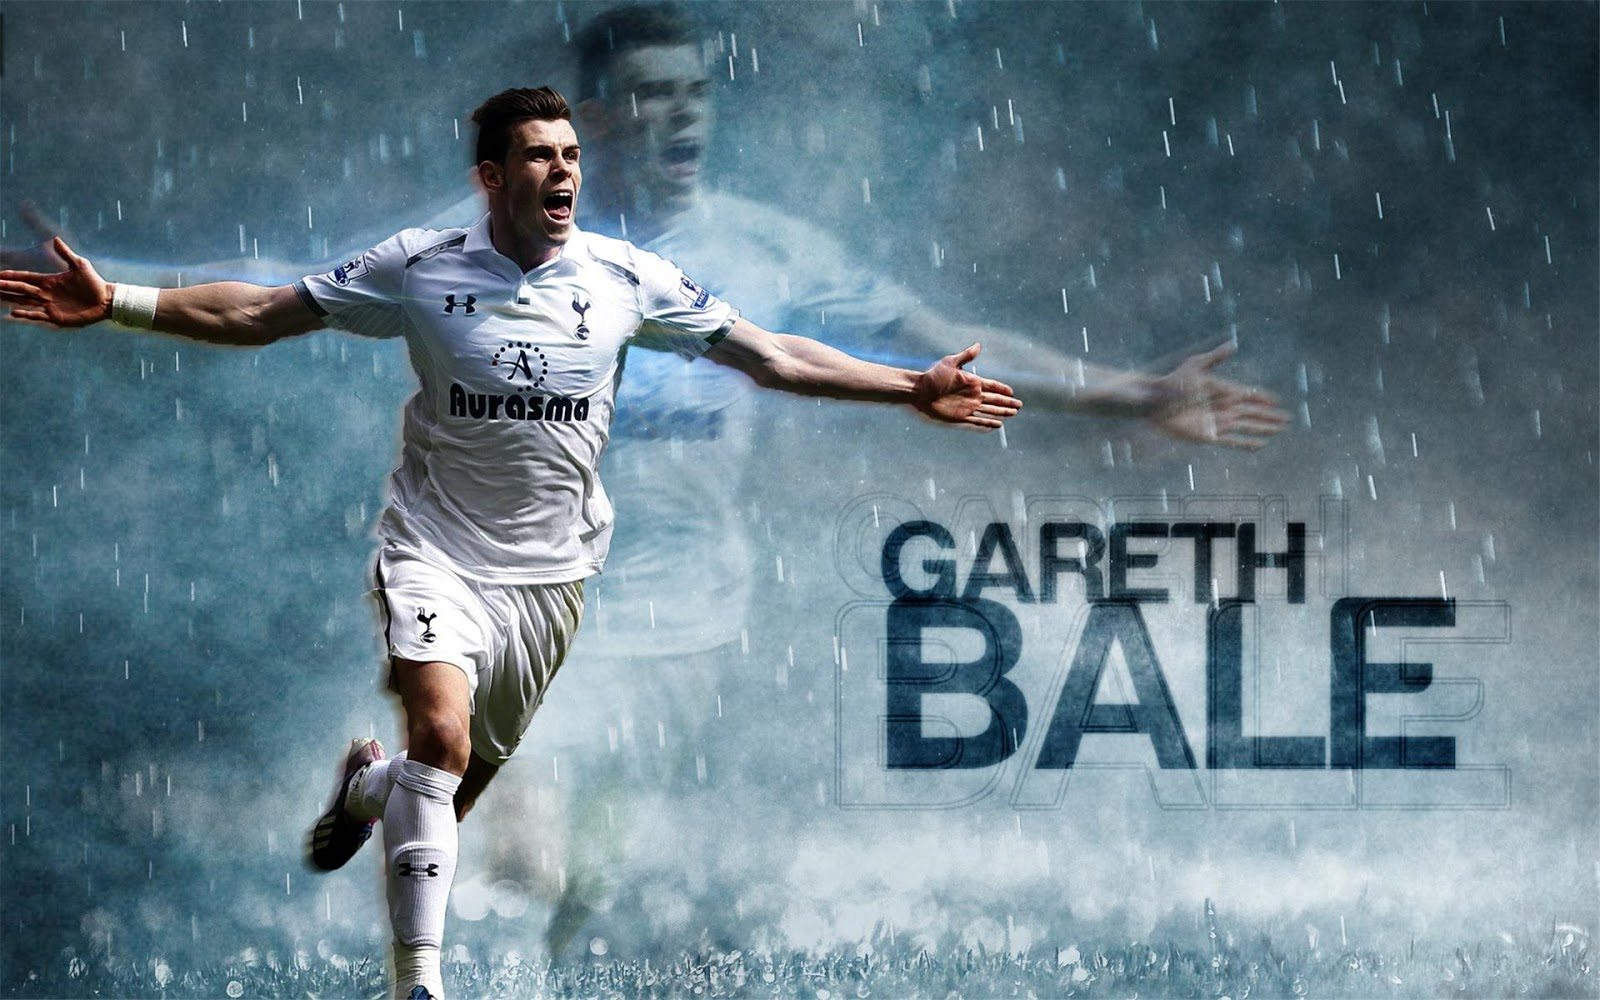 Real Madrid D Gareth Bale Fresh Hd Wallpapers 2013 All About Hd Wallpapers